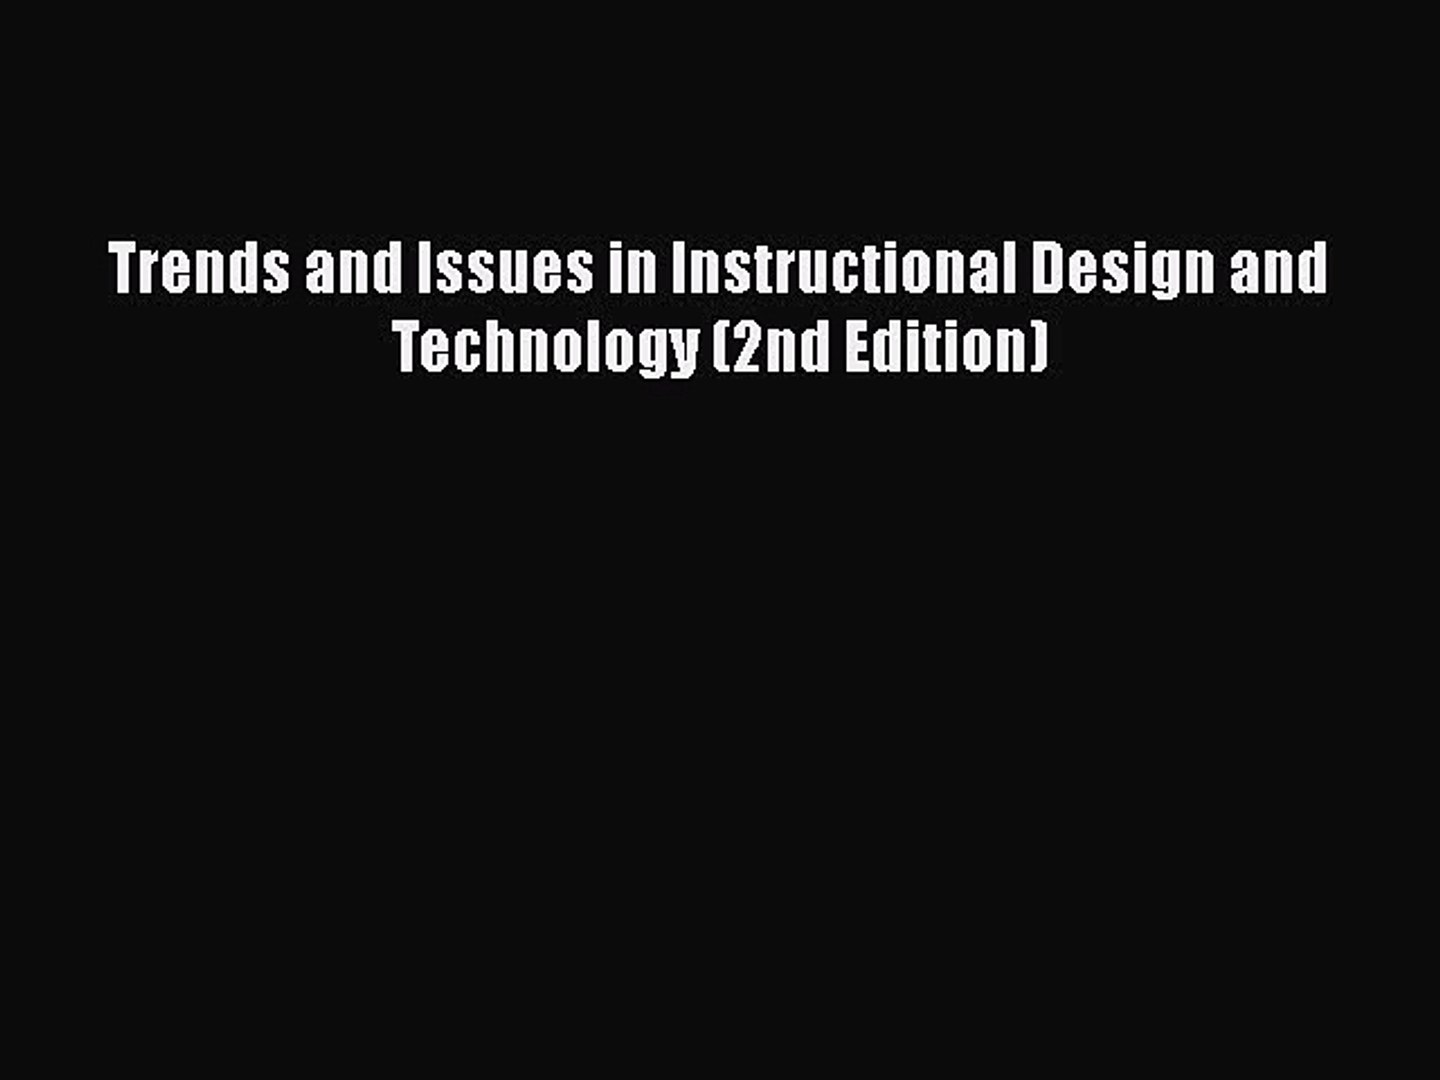 Pdf Trends And Issues In Instructional Design And Technology 2nd Edition Read Online Video Dailymotion